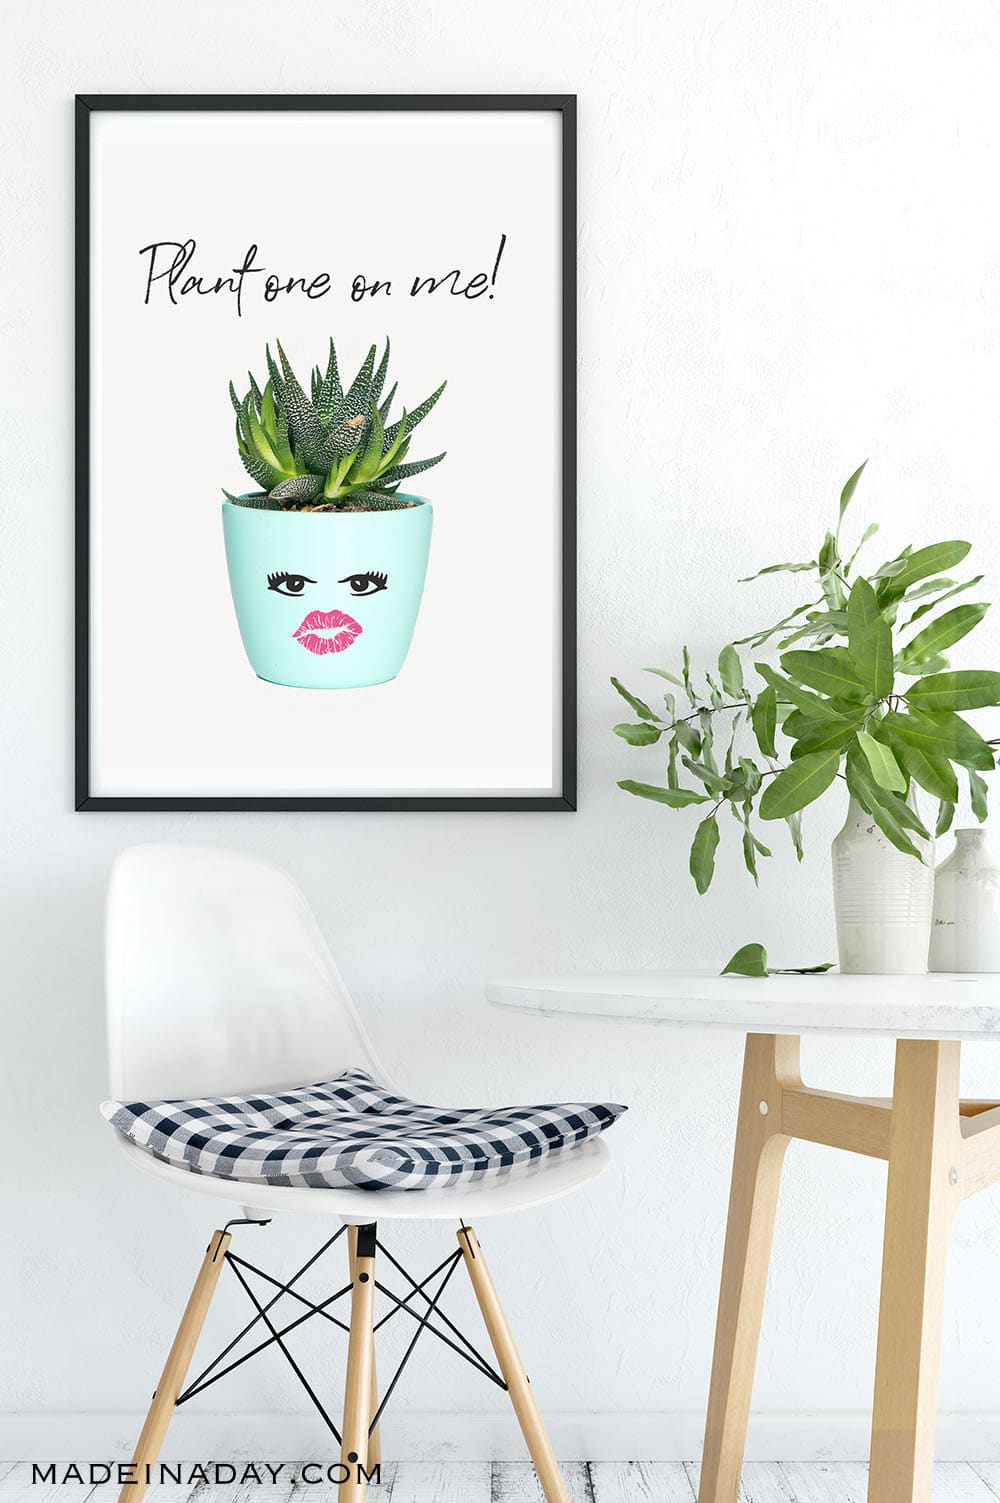 Plant one on me printable, succulent plant one on me, succulent printables free, lips plant one on me printable, plant printable, botanical printable, teal botanical printable, aloe plant printable, plant face printable, potted plant face printable